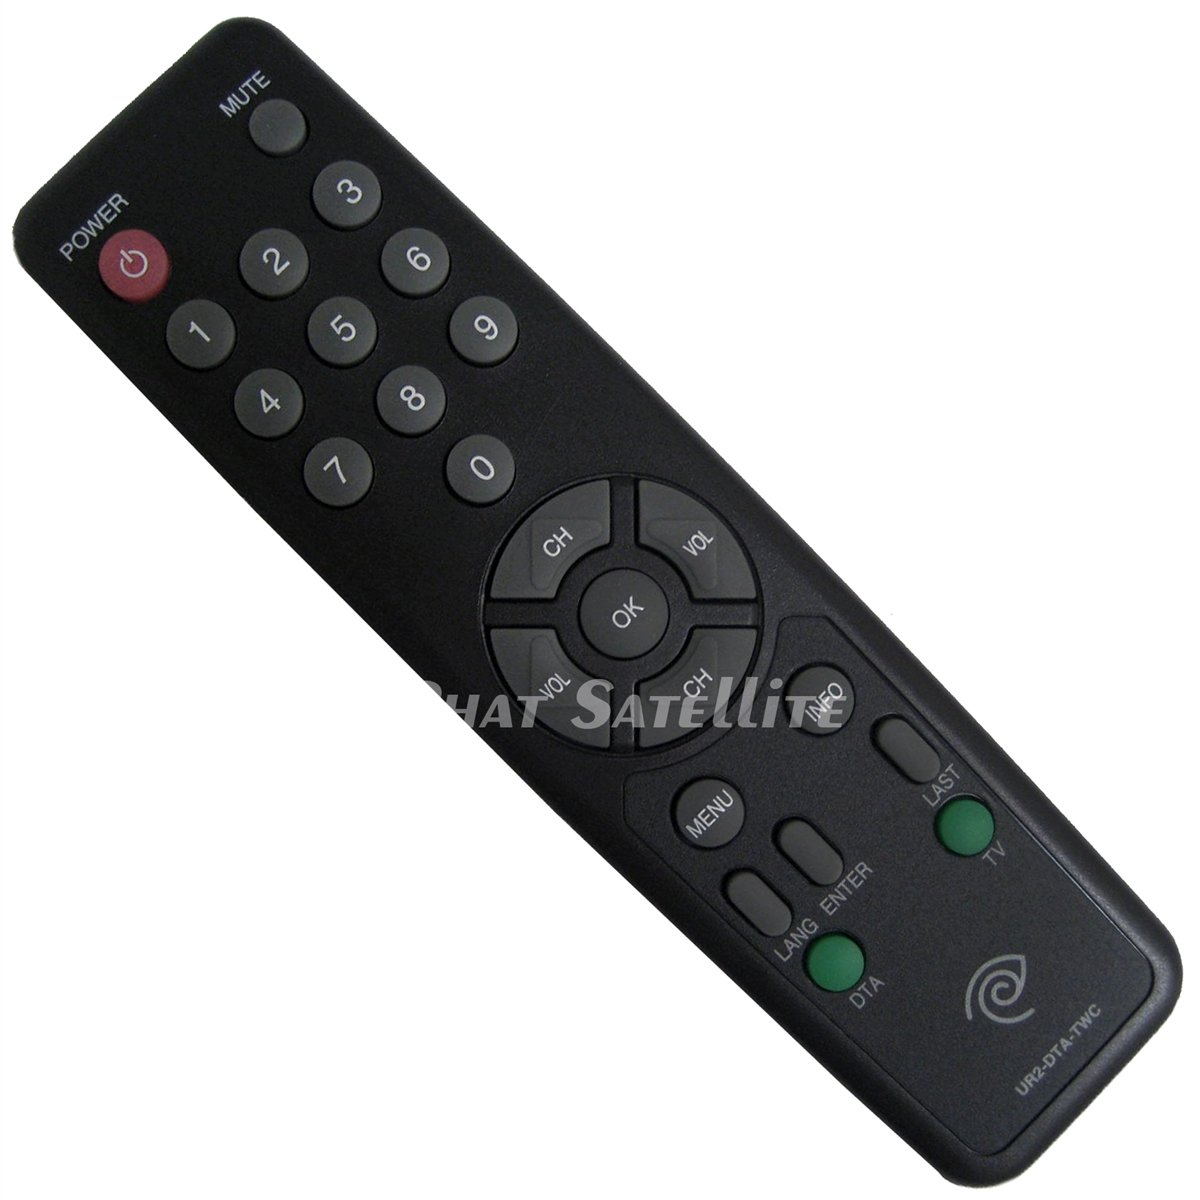 Directv Rc71 Remote Control Home Audio Theater Wireless C41 Genie Diagram